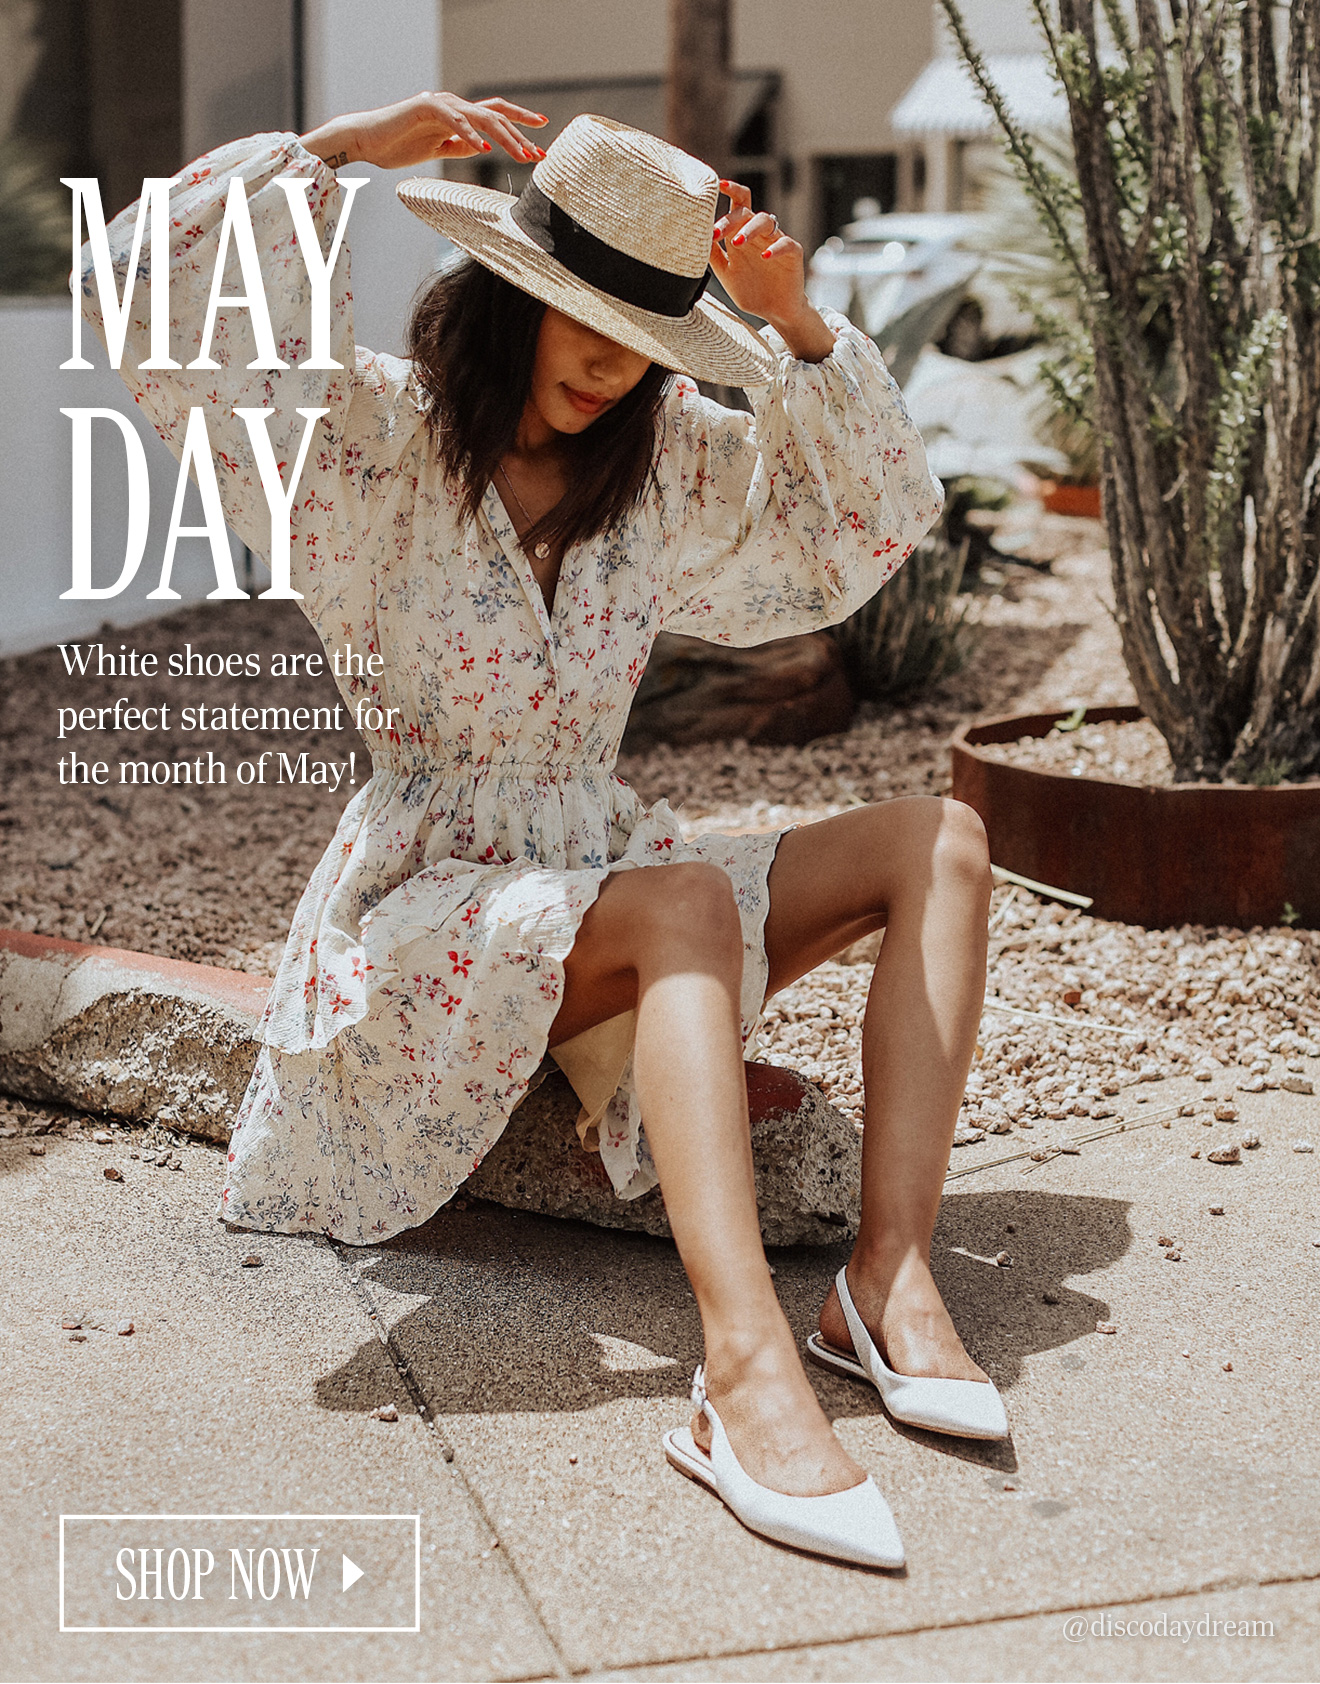 MAY DAY. White shoes are the perfect statement for the month of May! SHOP NOW